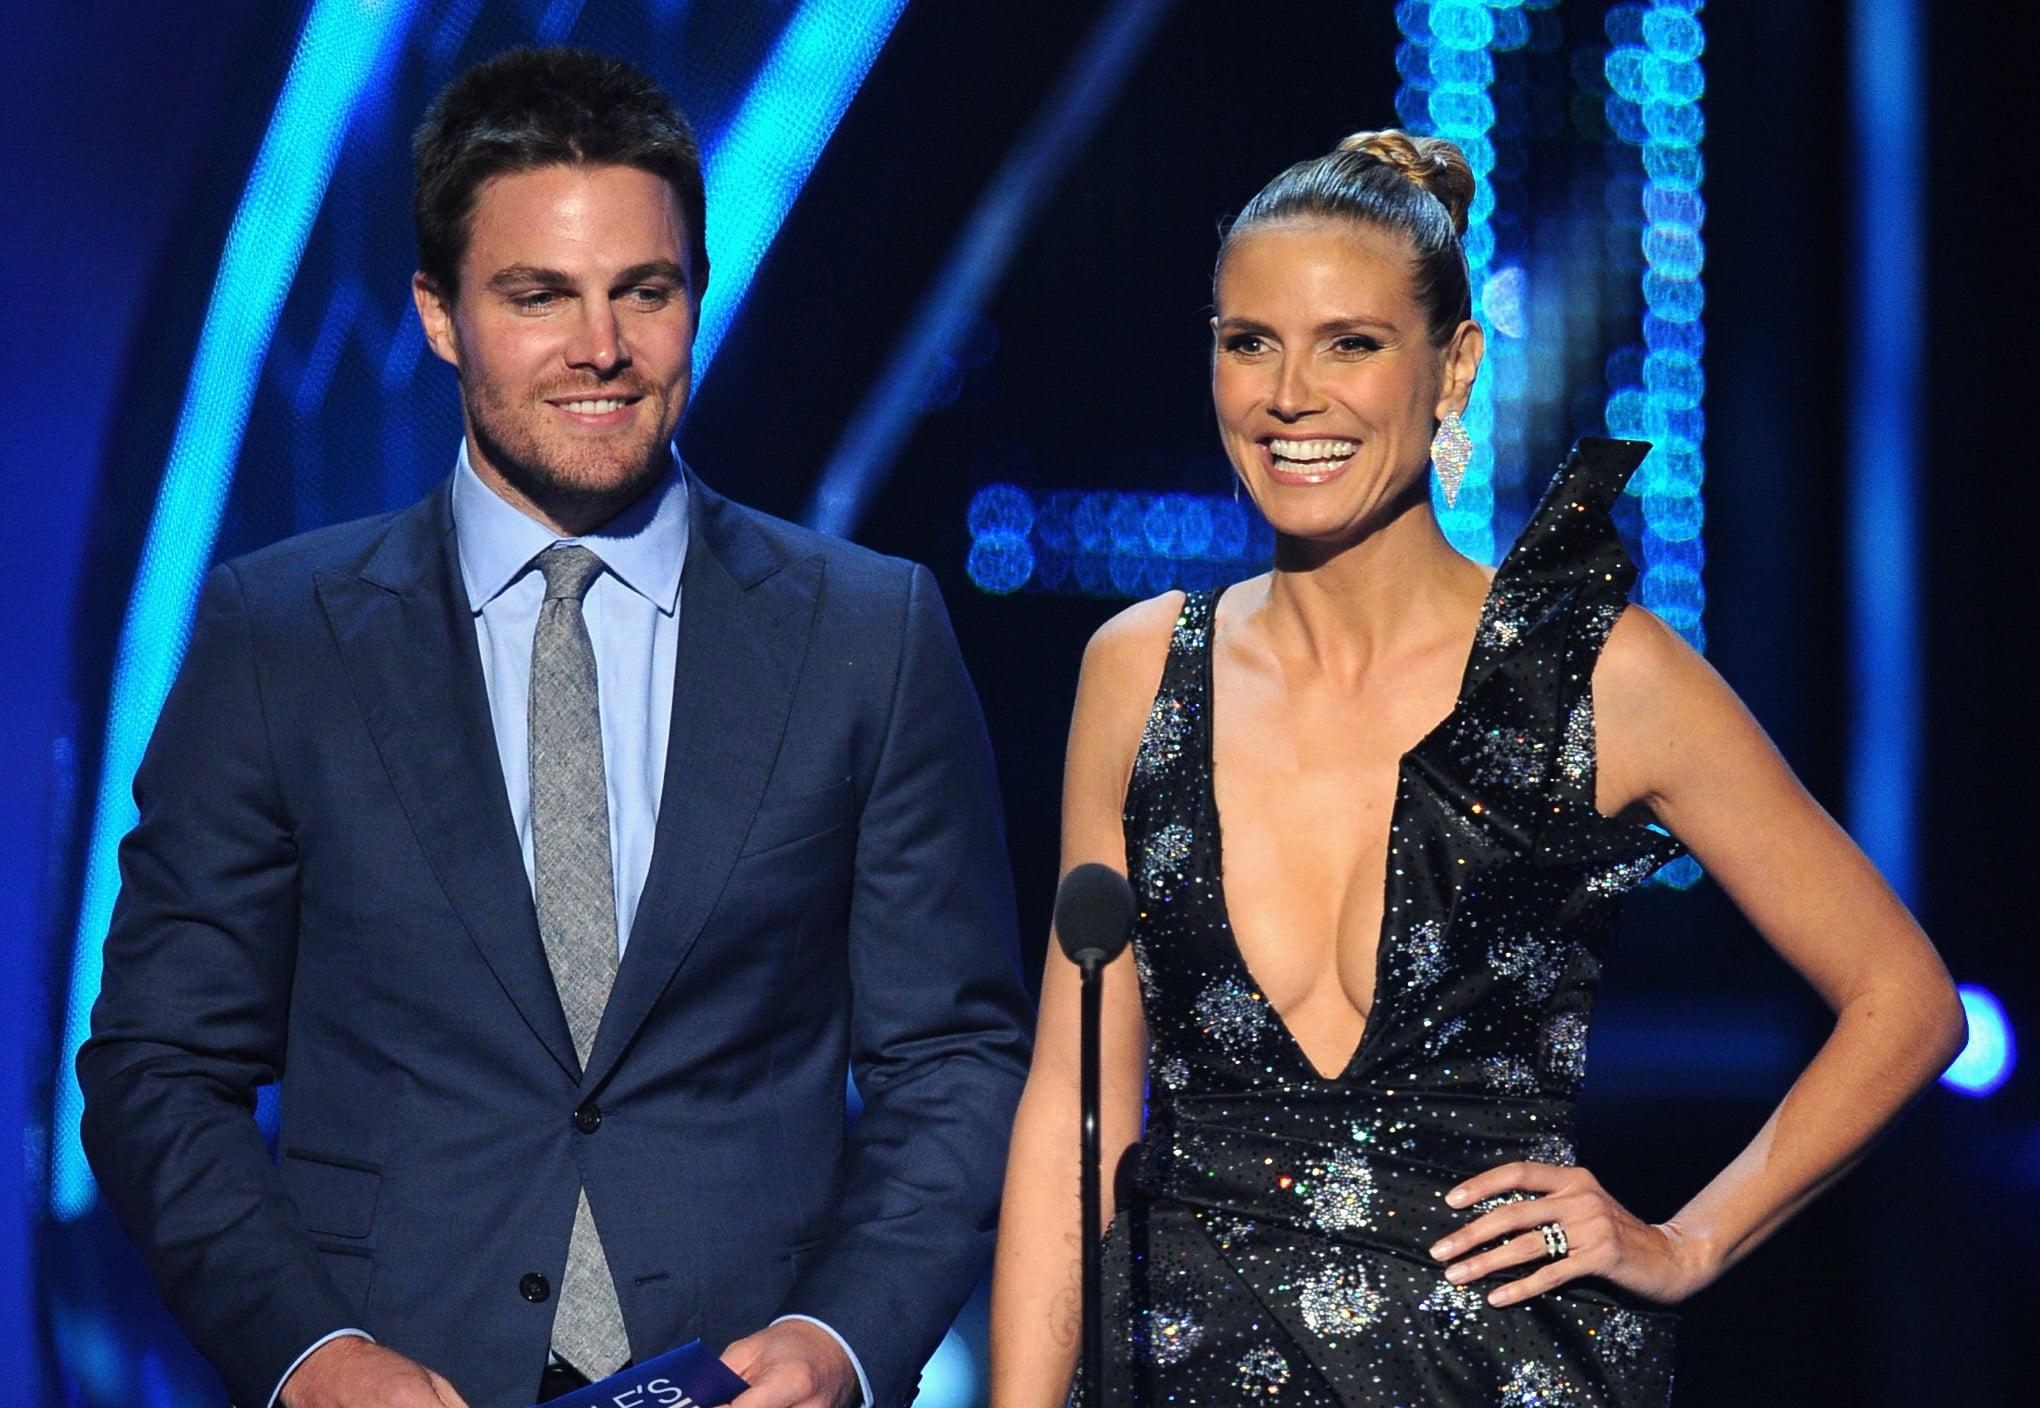 Heidi Klum and Stephen Amell joked around when they played presenters at the show.